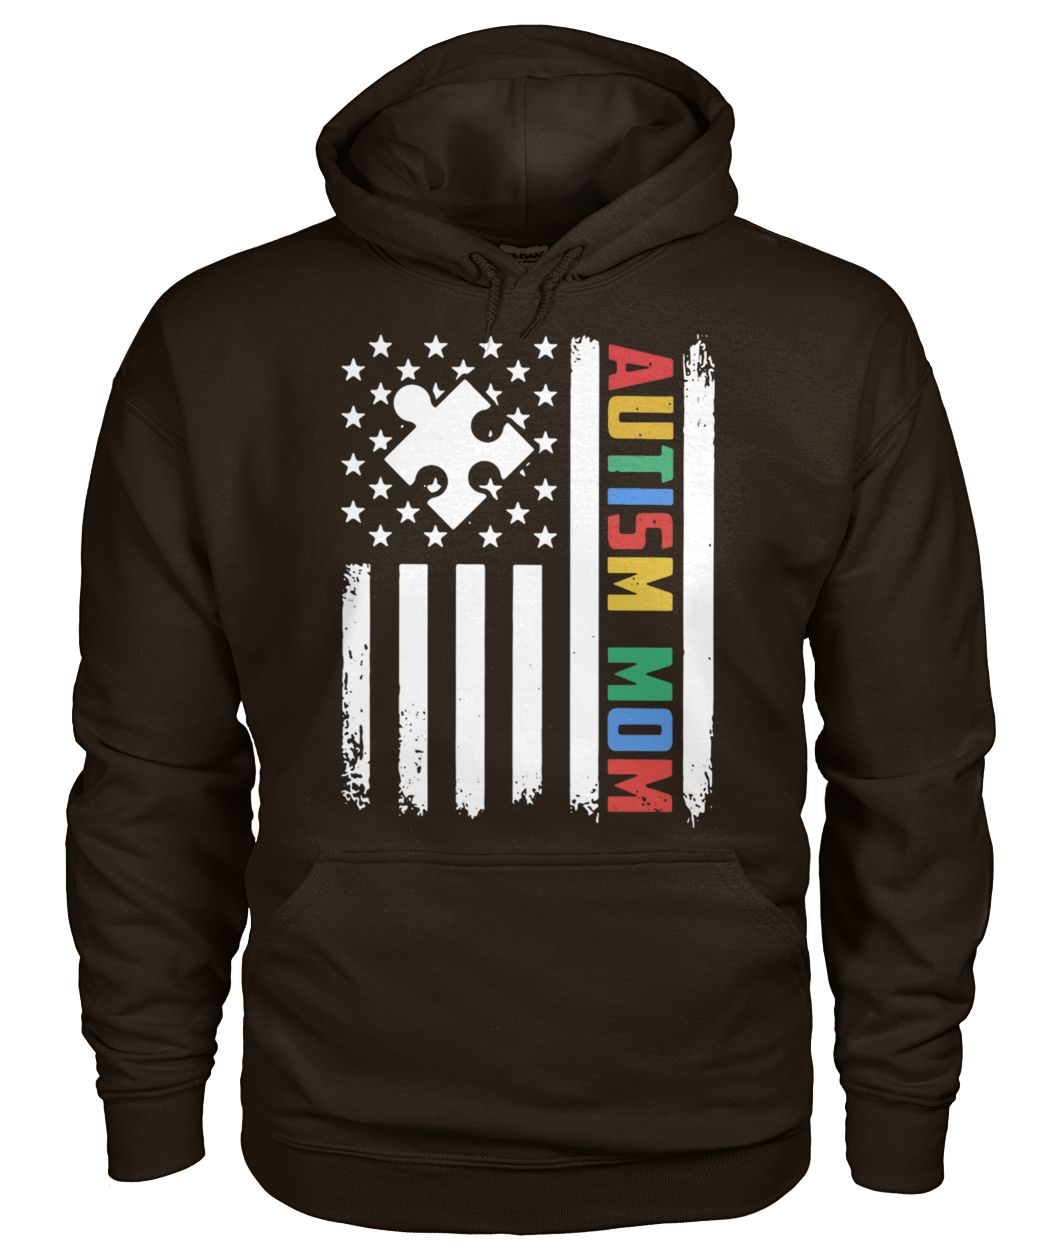 Autism mom america flag independence day gildan hoodie